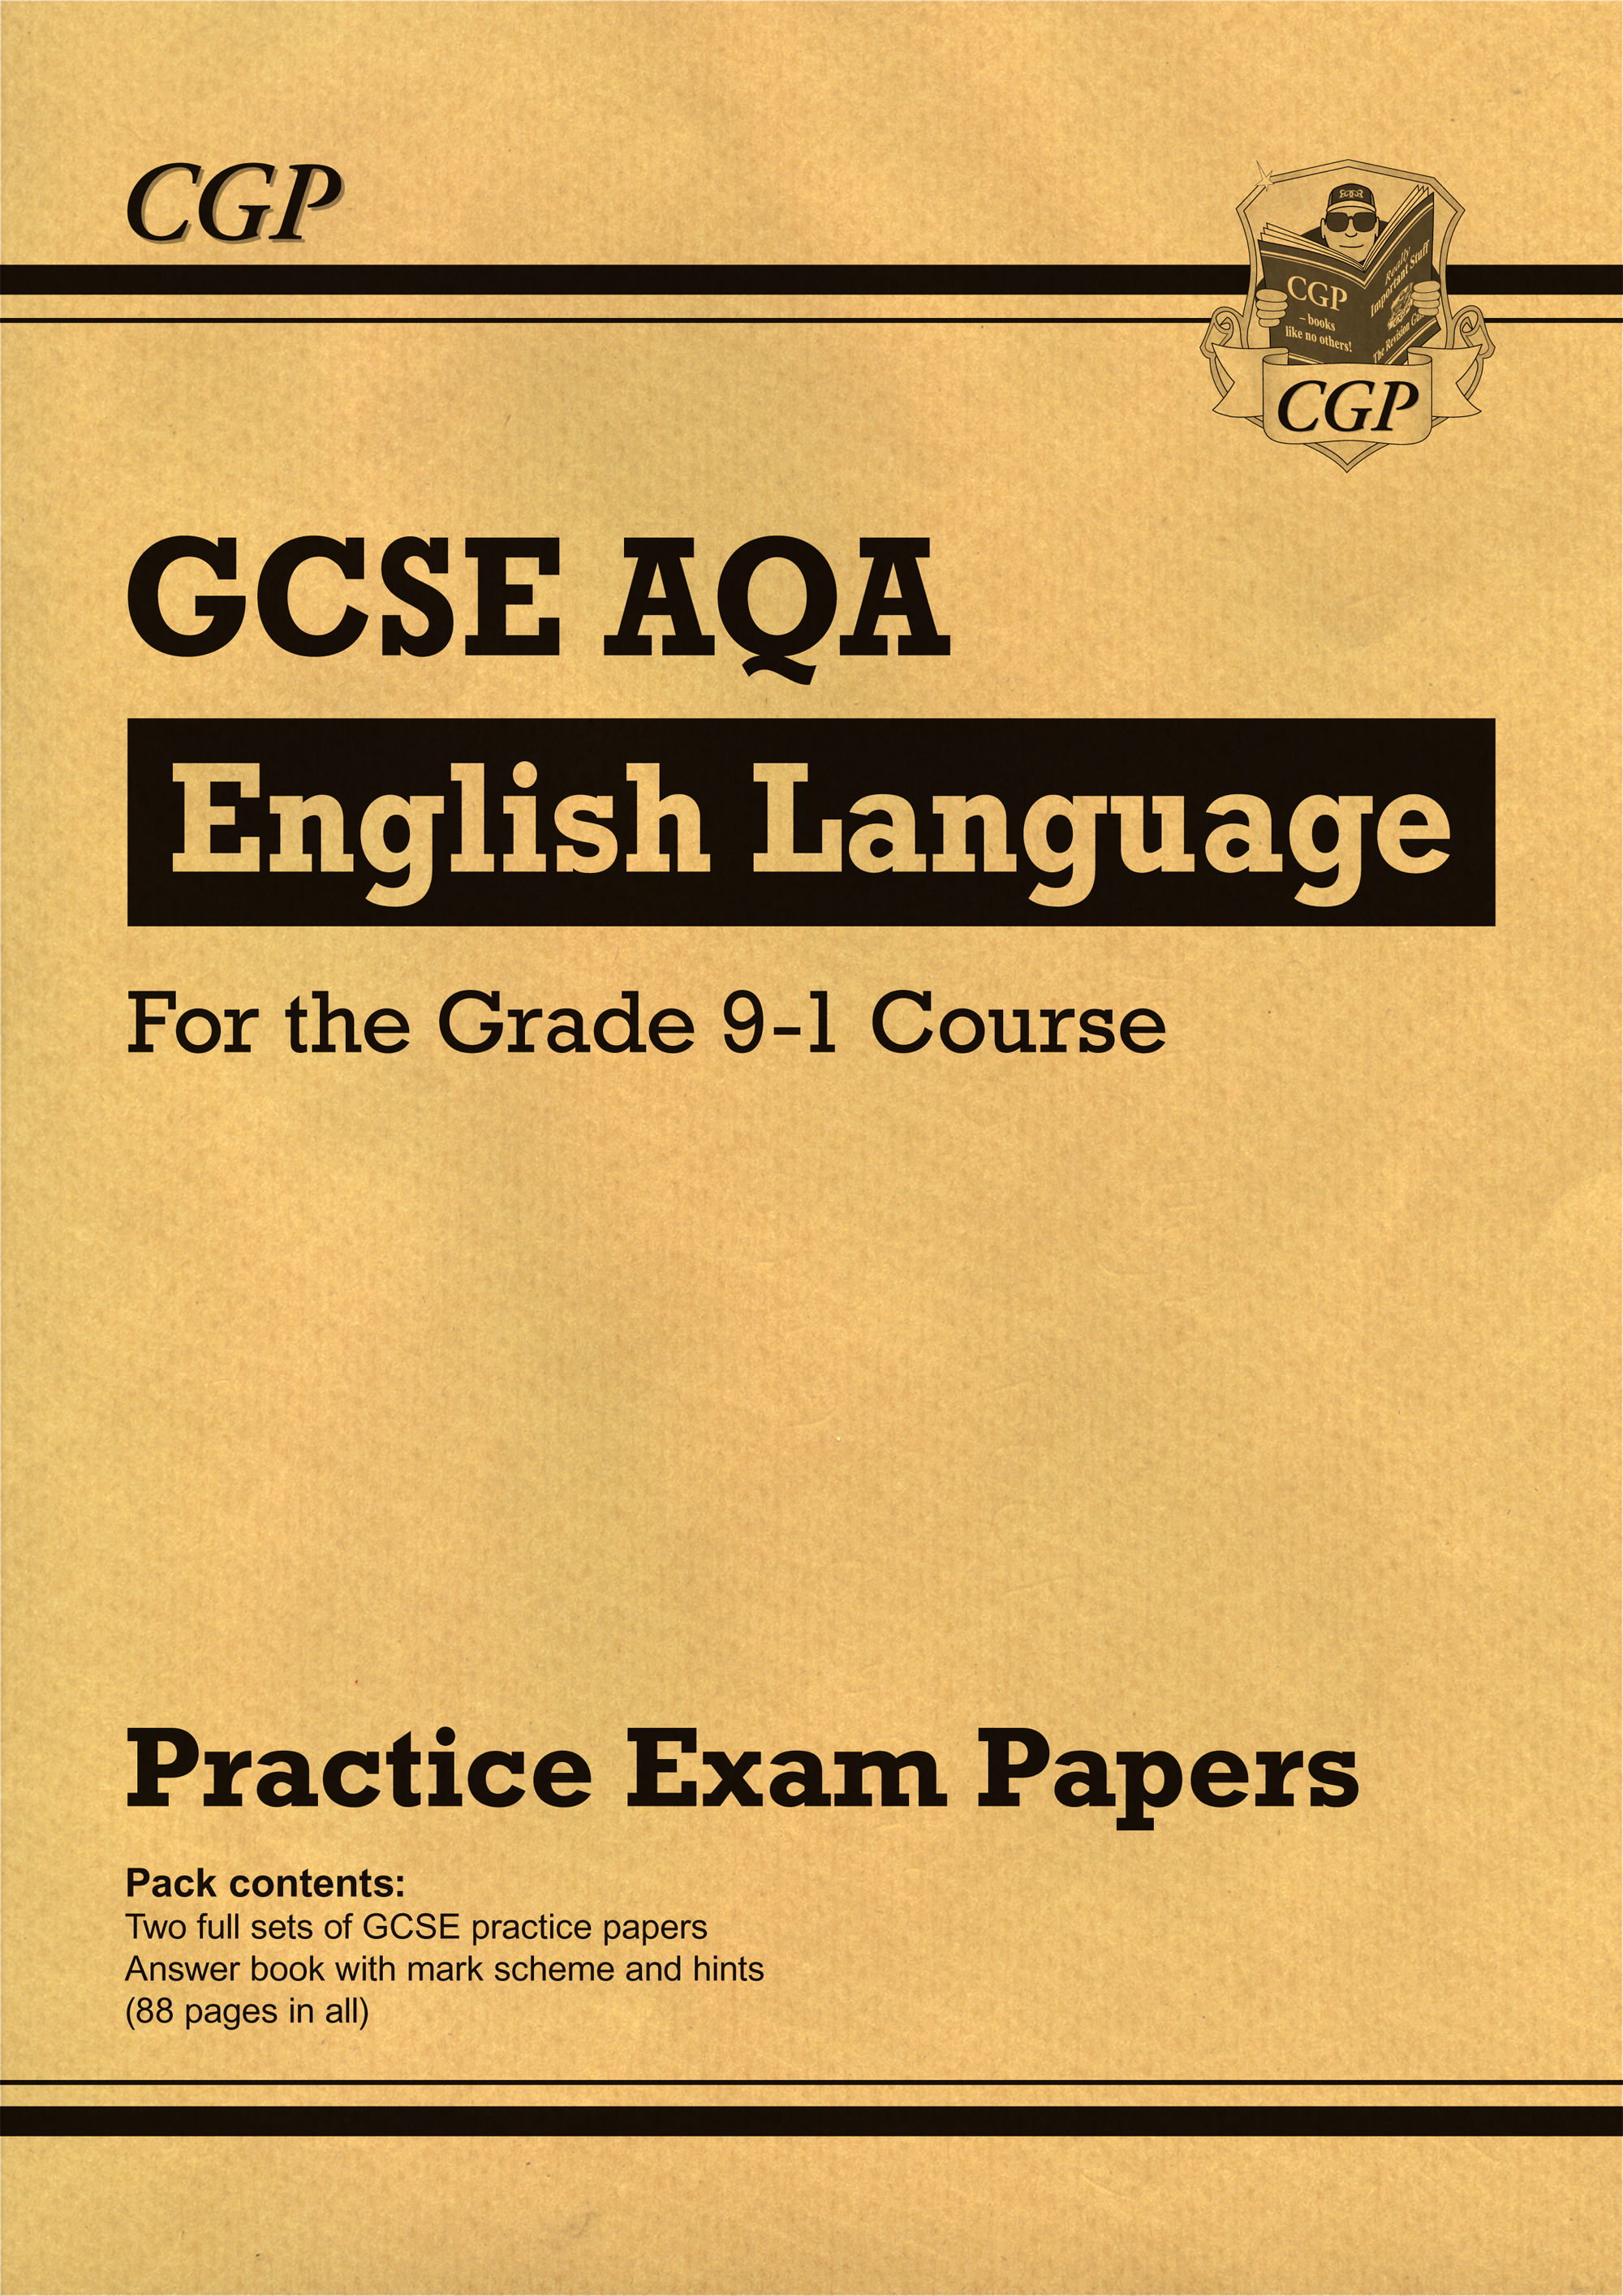 ENAP41 - New GCSE English Language AQA Practice Papers - for the Grade 9-1 Course